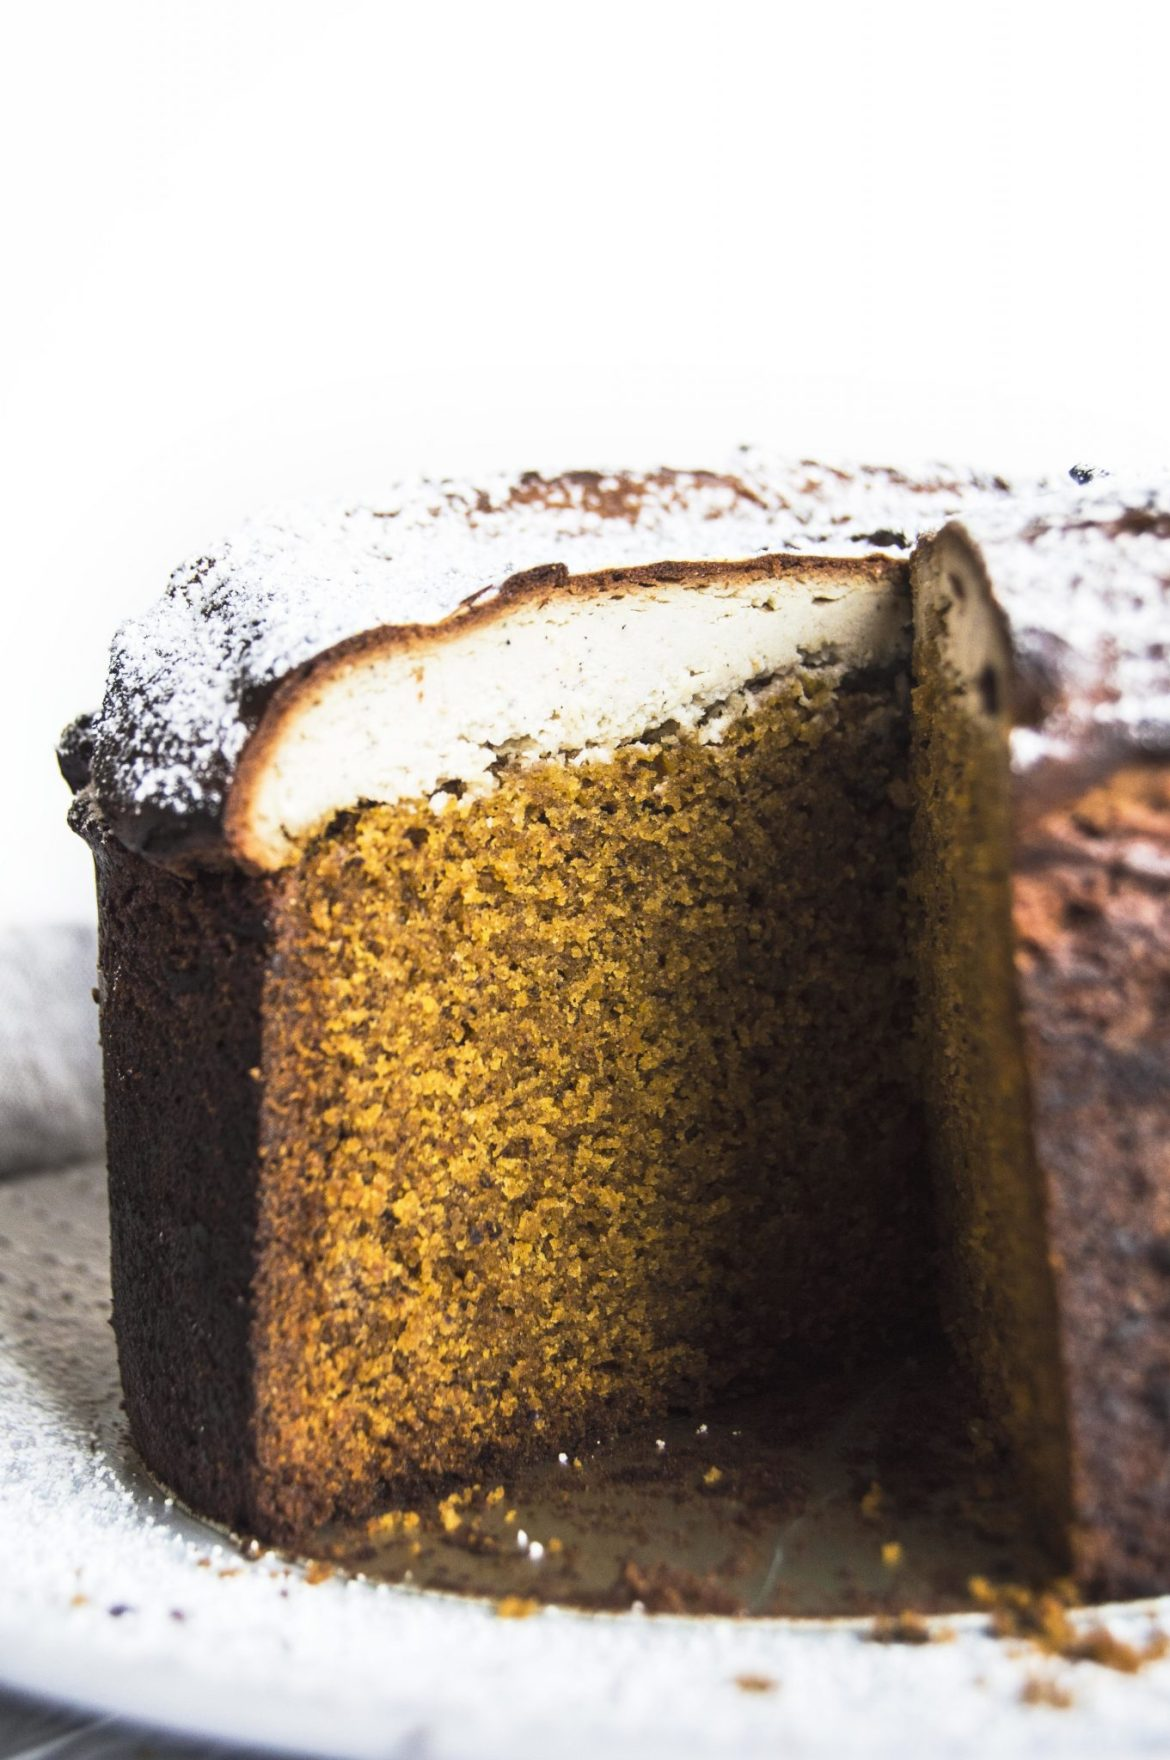 Vegan Pumpkin Zesty Orange And Crushed Black Pepper Cake With Cardamom Cheesecake Topping